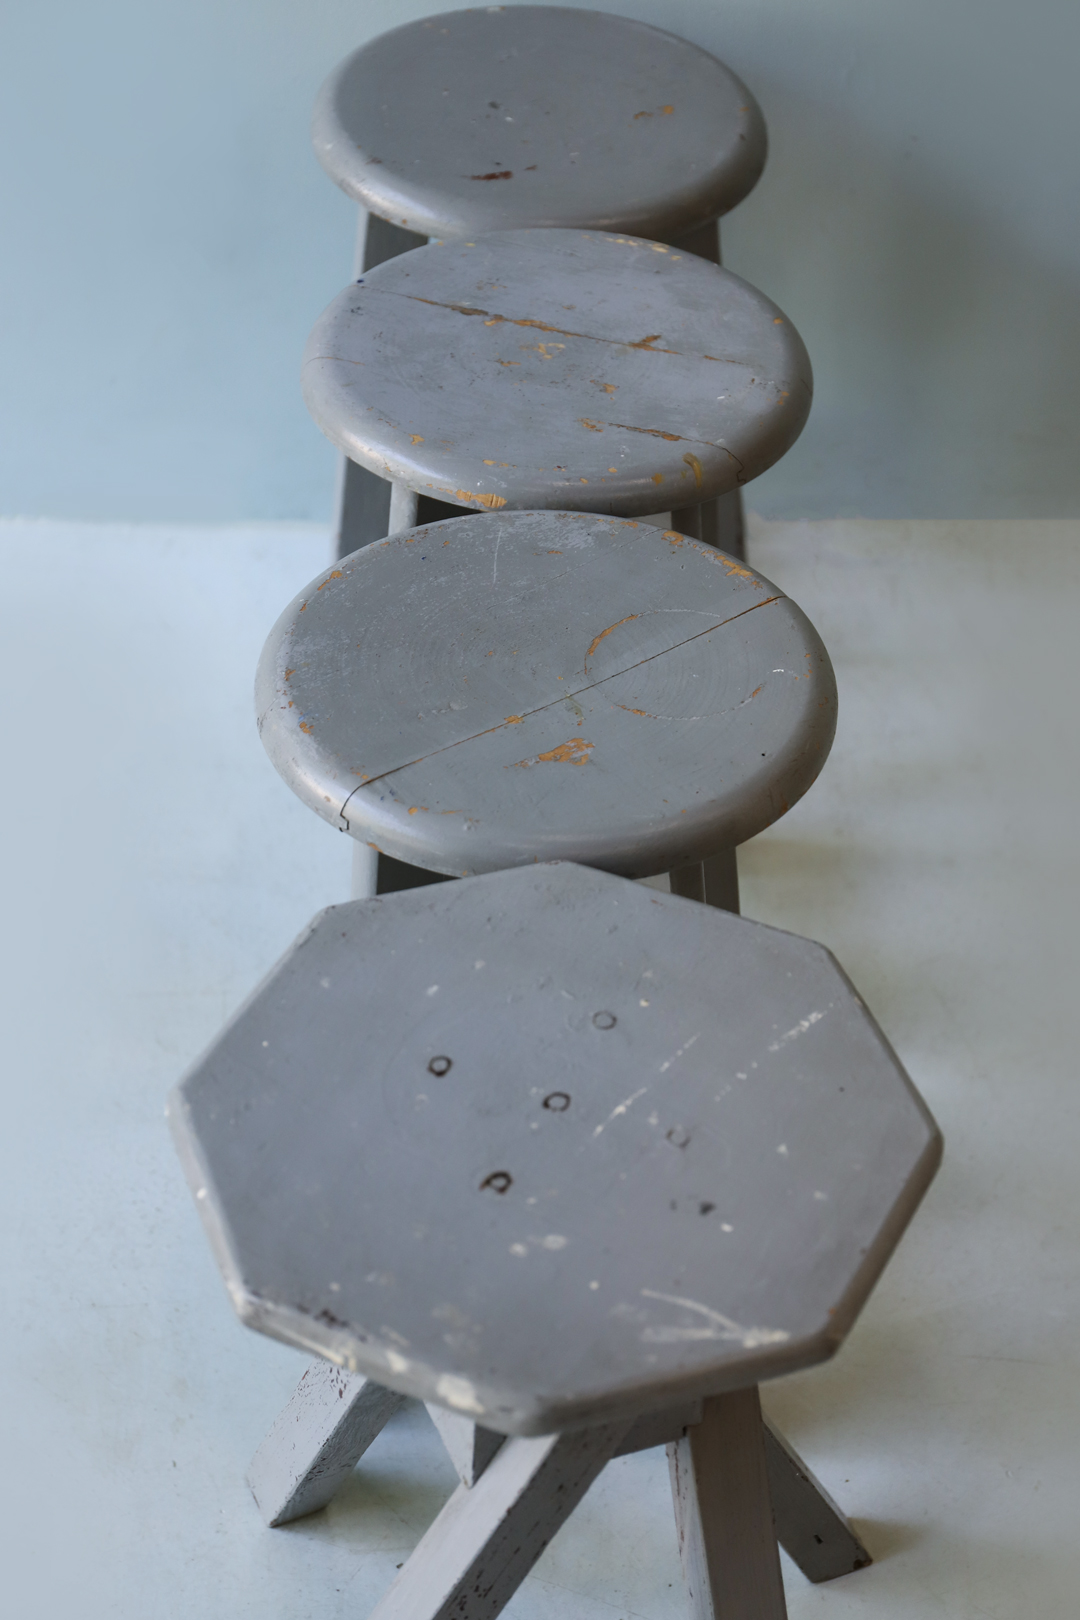 Vintage Atelier Stool Painted Gray/ヴィンテージ アトリエスツール 丸椅子 グレーペイント シャビーシック